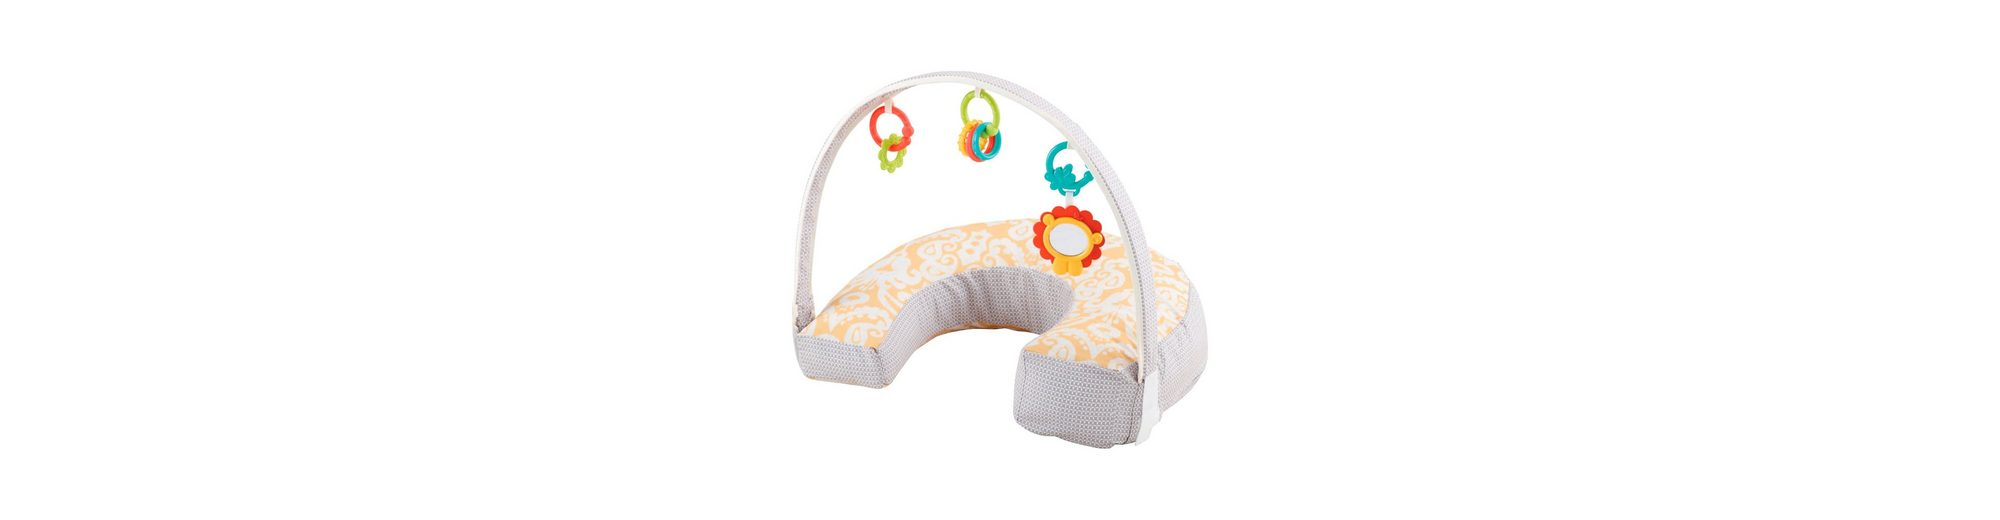 FISHER PRICE Stillkisssen 4-in-1